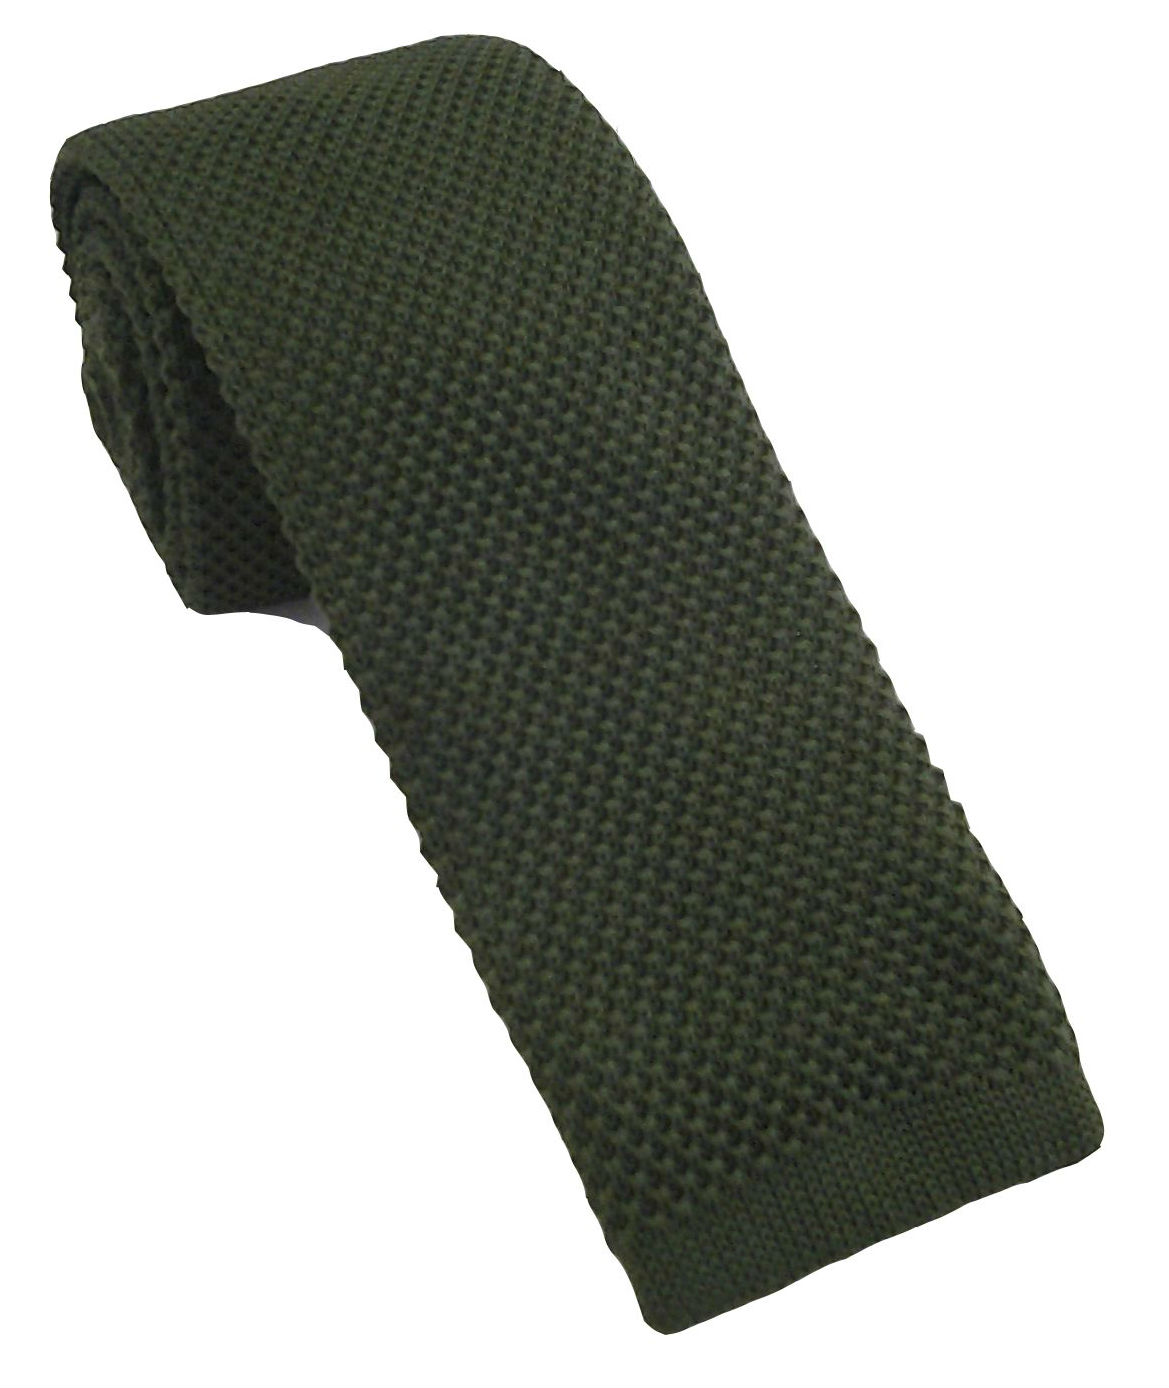 Dark Olive Green Knitted Tie